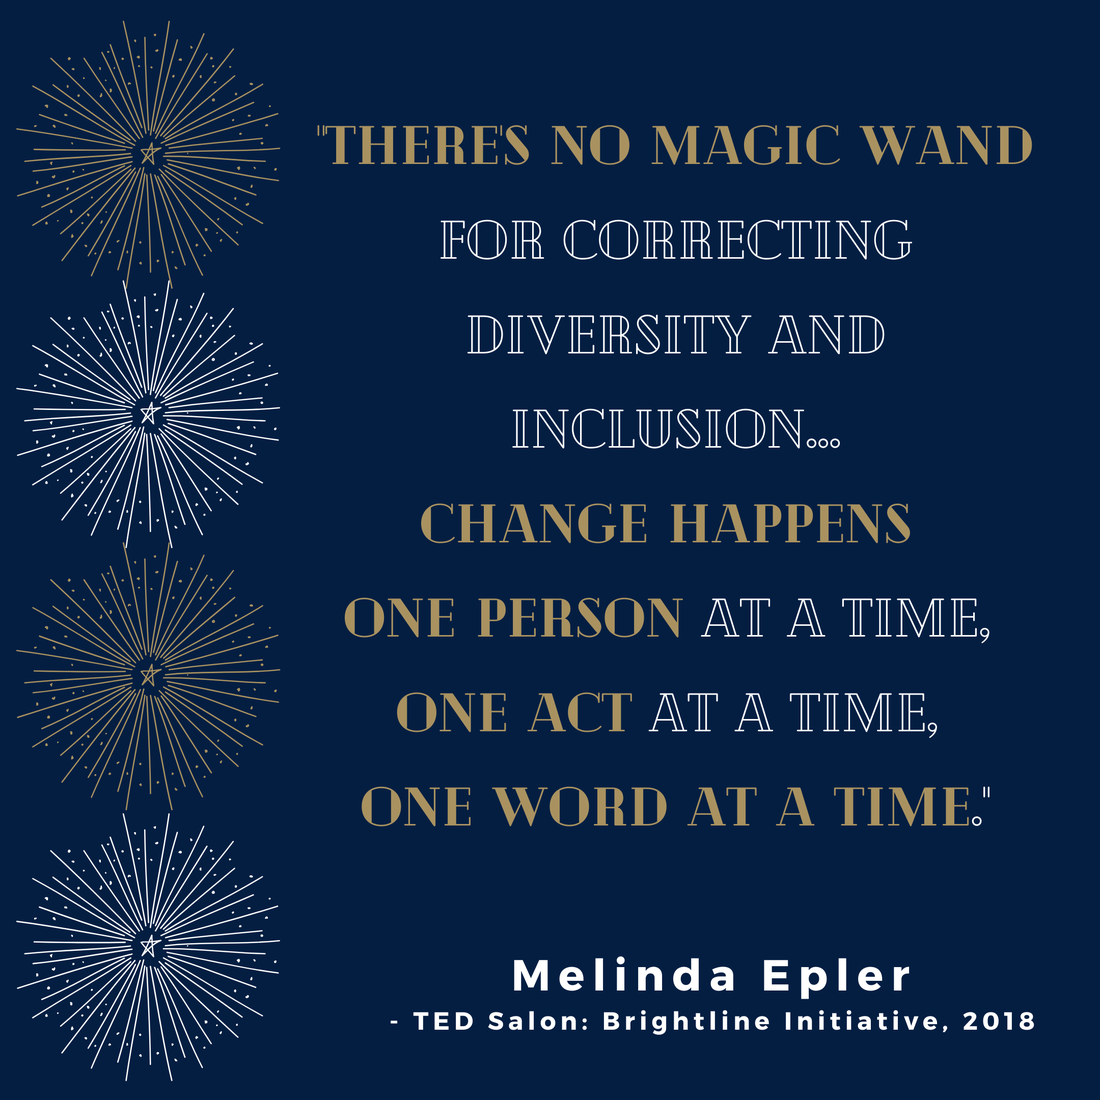 """""""There's no magic wand for correcting diversity and inclusion...change happens one person at a time, one act at a time, one word at a time."""" Melinda Epler, TED Salon: Brightline Initiative, 2018"""